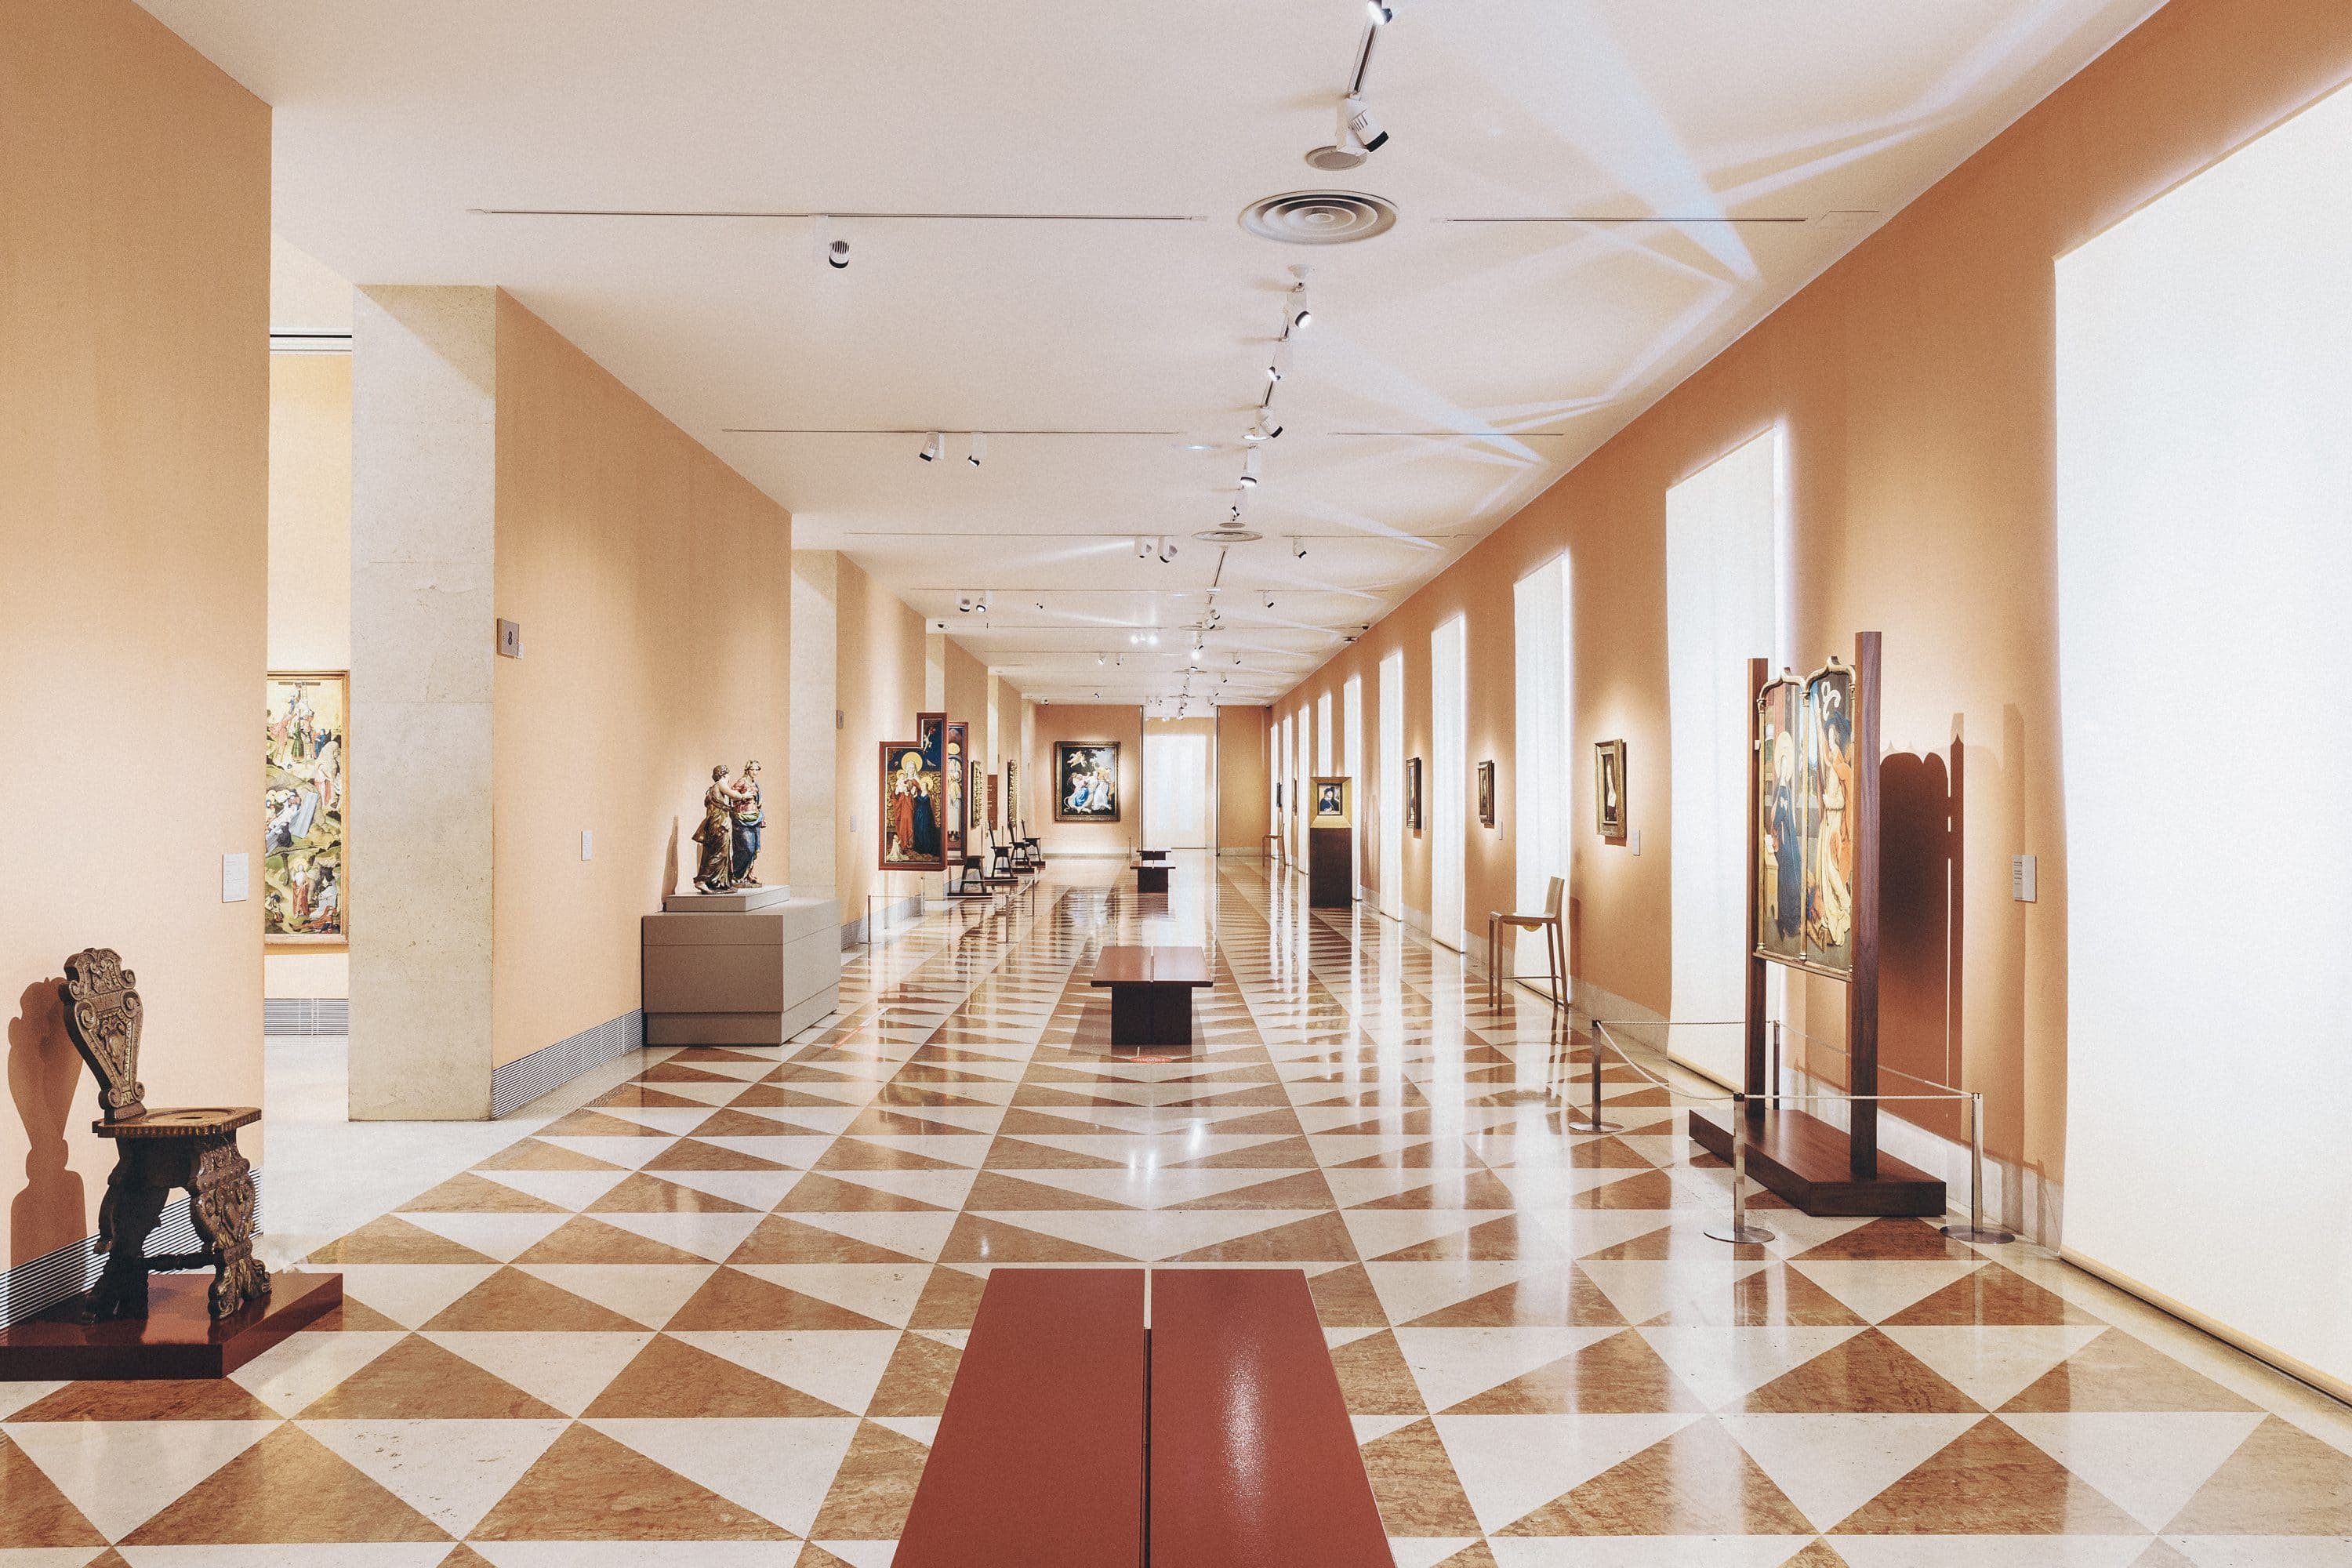 Long gallery at Thyssen Museum